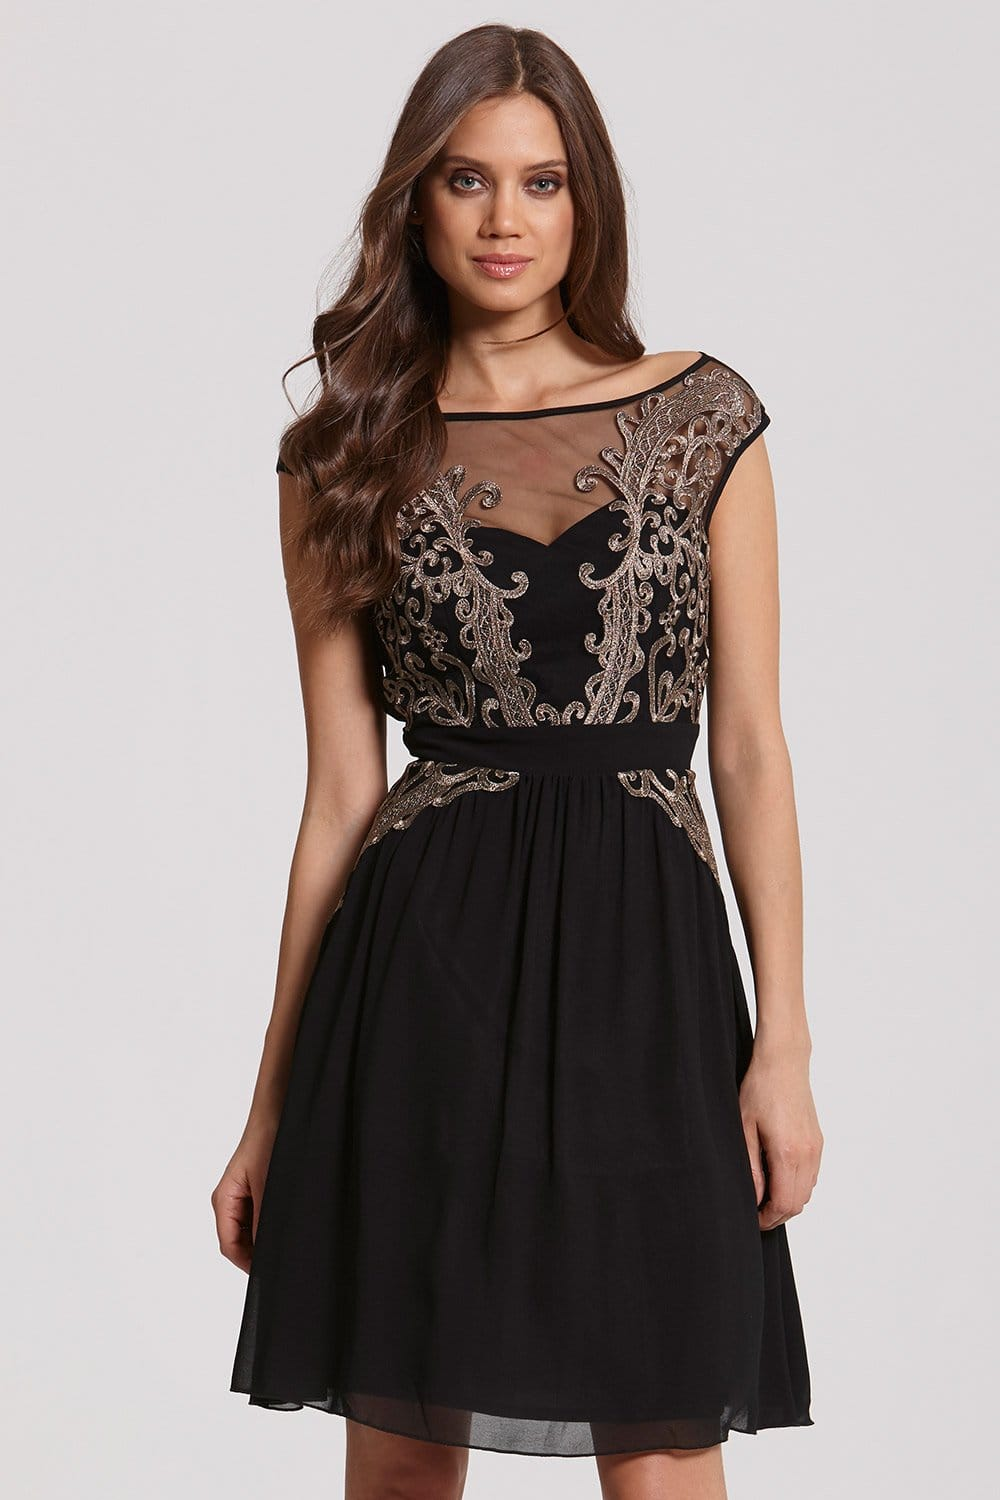 Black and Gold Appliqué Fit and Flare Dress - from Little Mistress UK